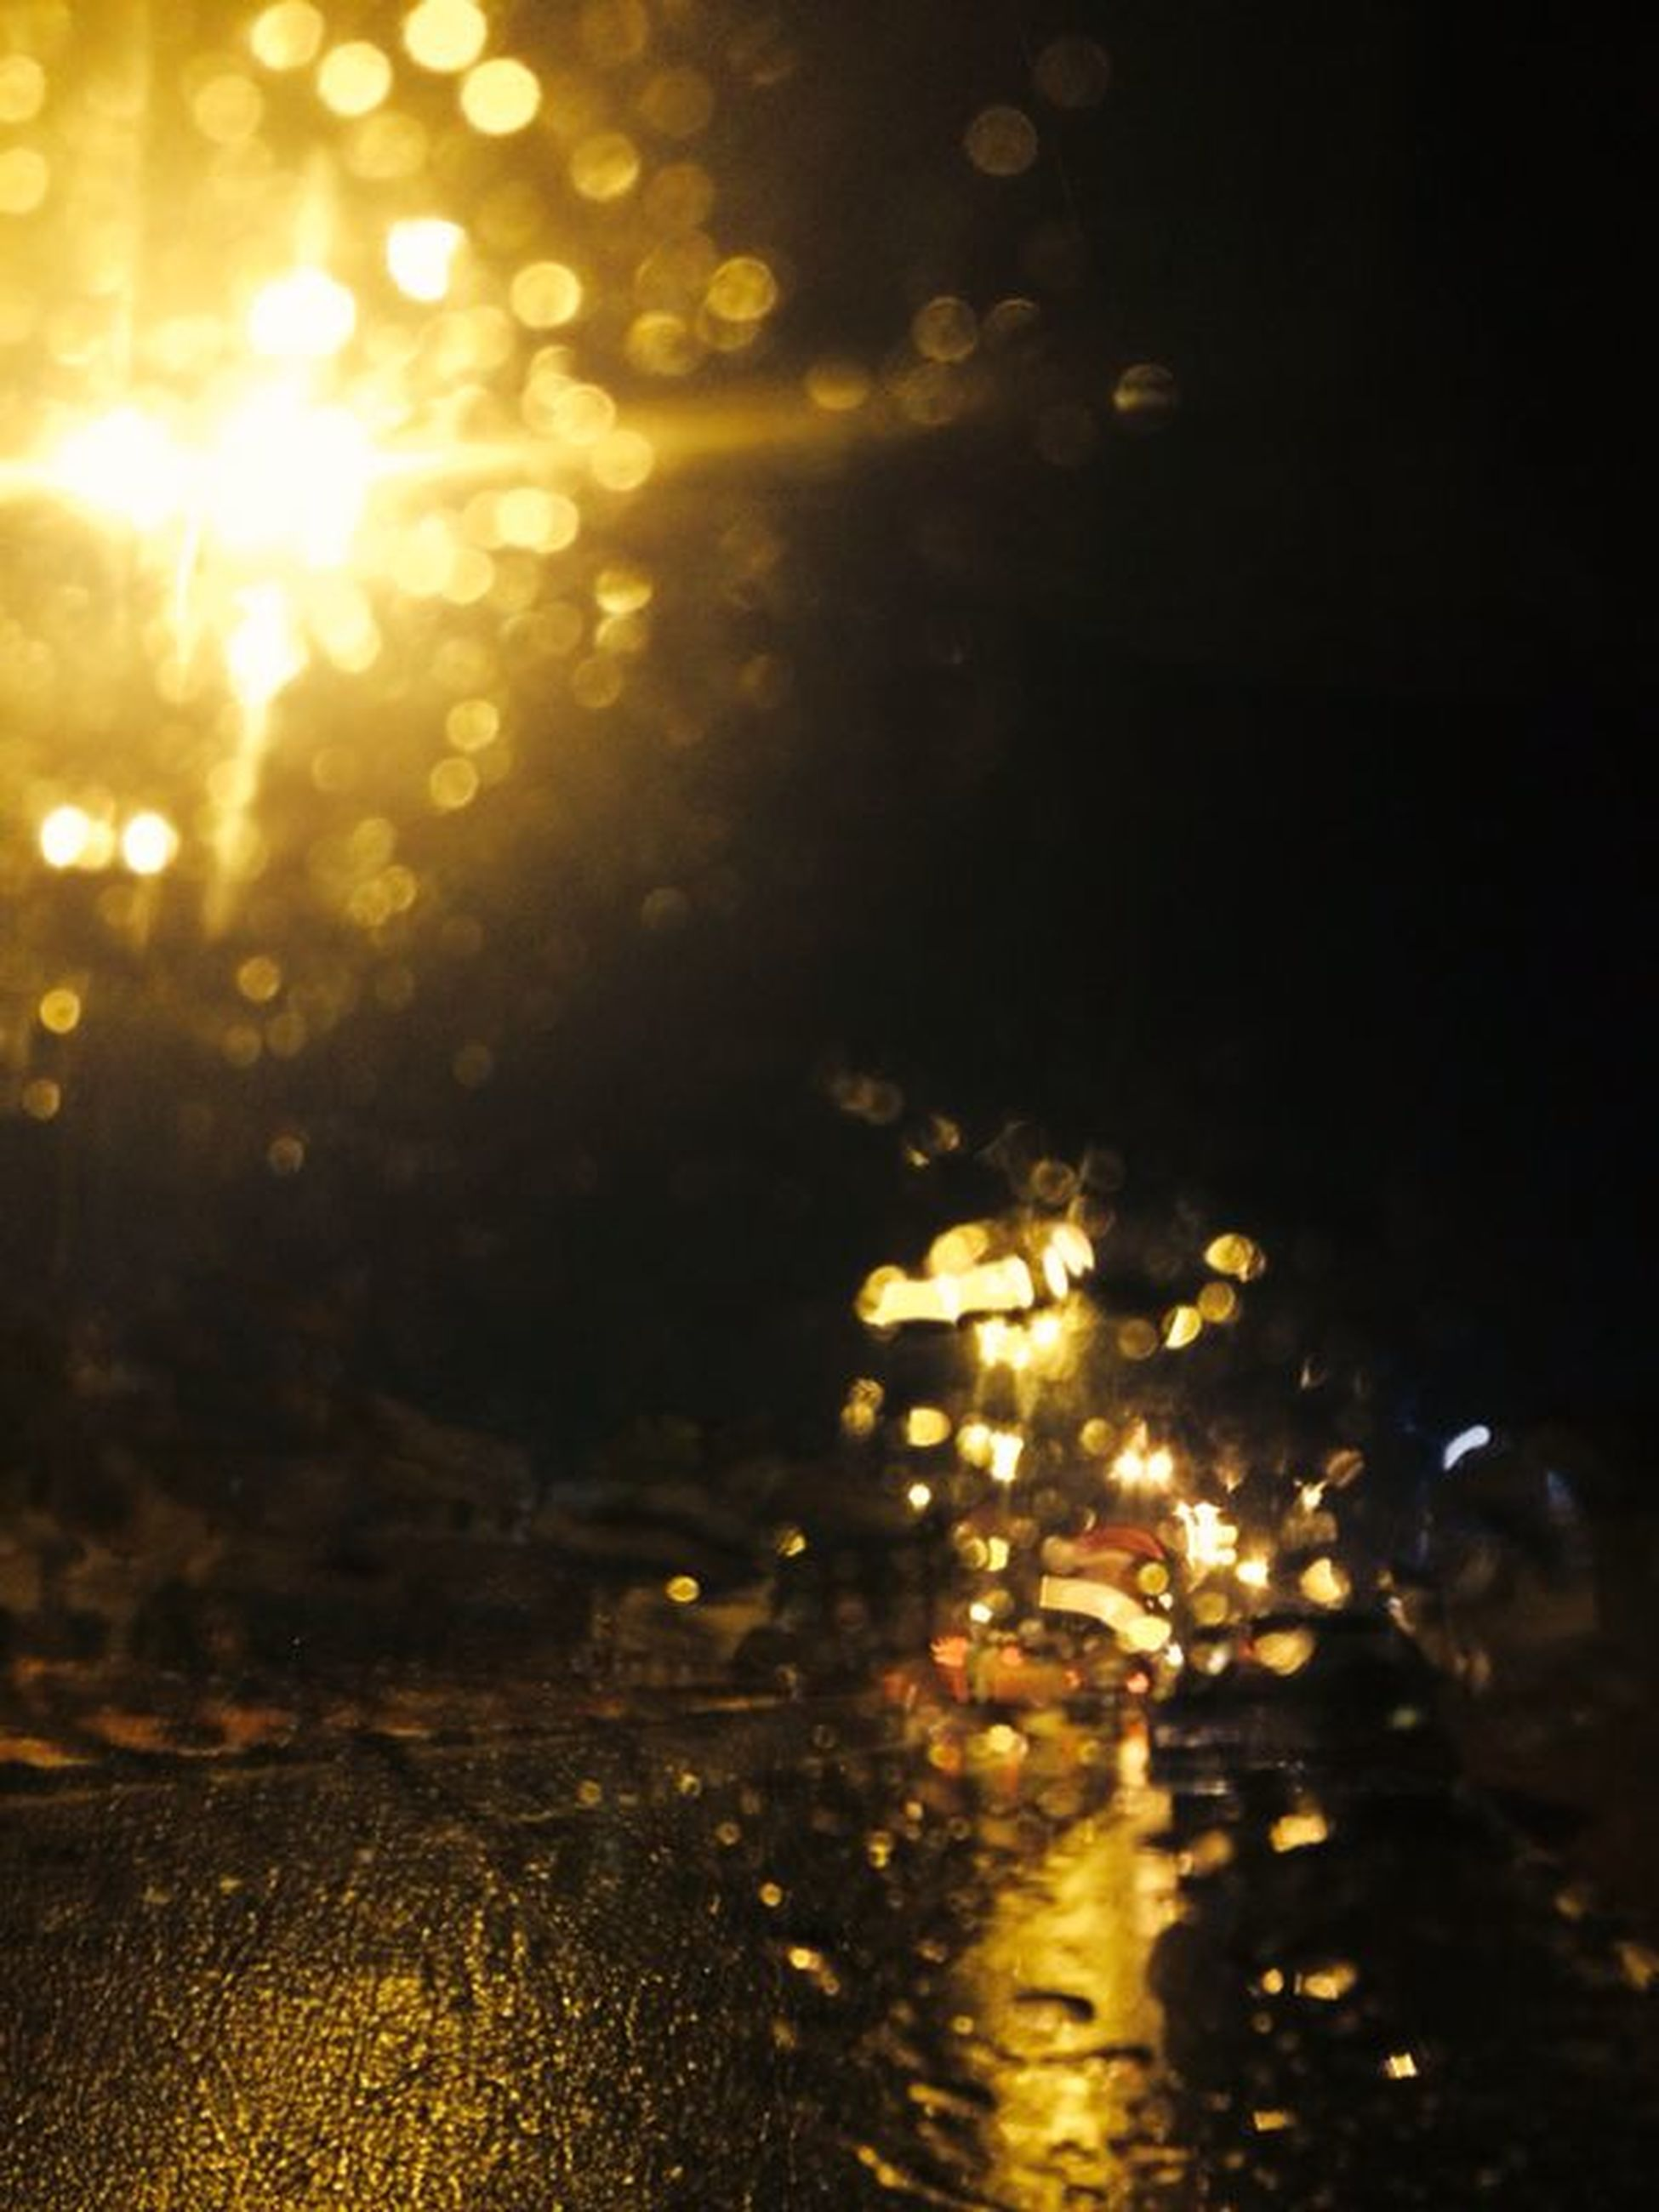 illuminated, night, street, street light, glowing, lighting equipment, lens flare, wet, transportation, light - natural phenomenon, defocused, road, car, no people, land vehicle, water, focus on foreground, glass - material, outdoors, reflection